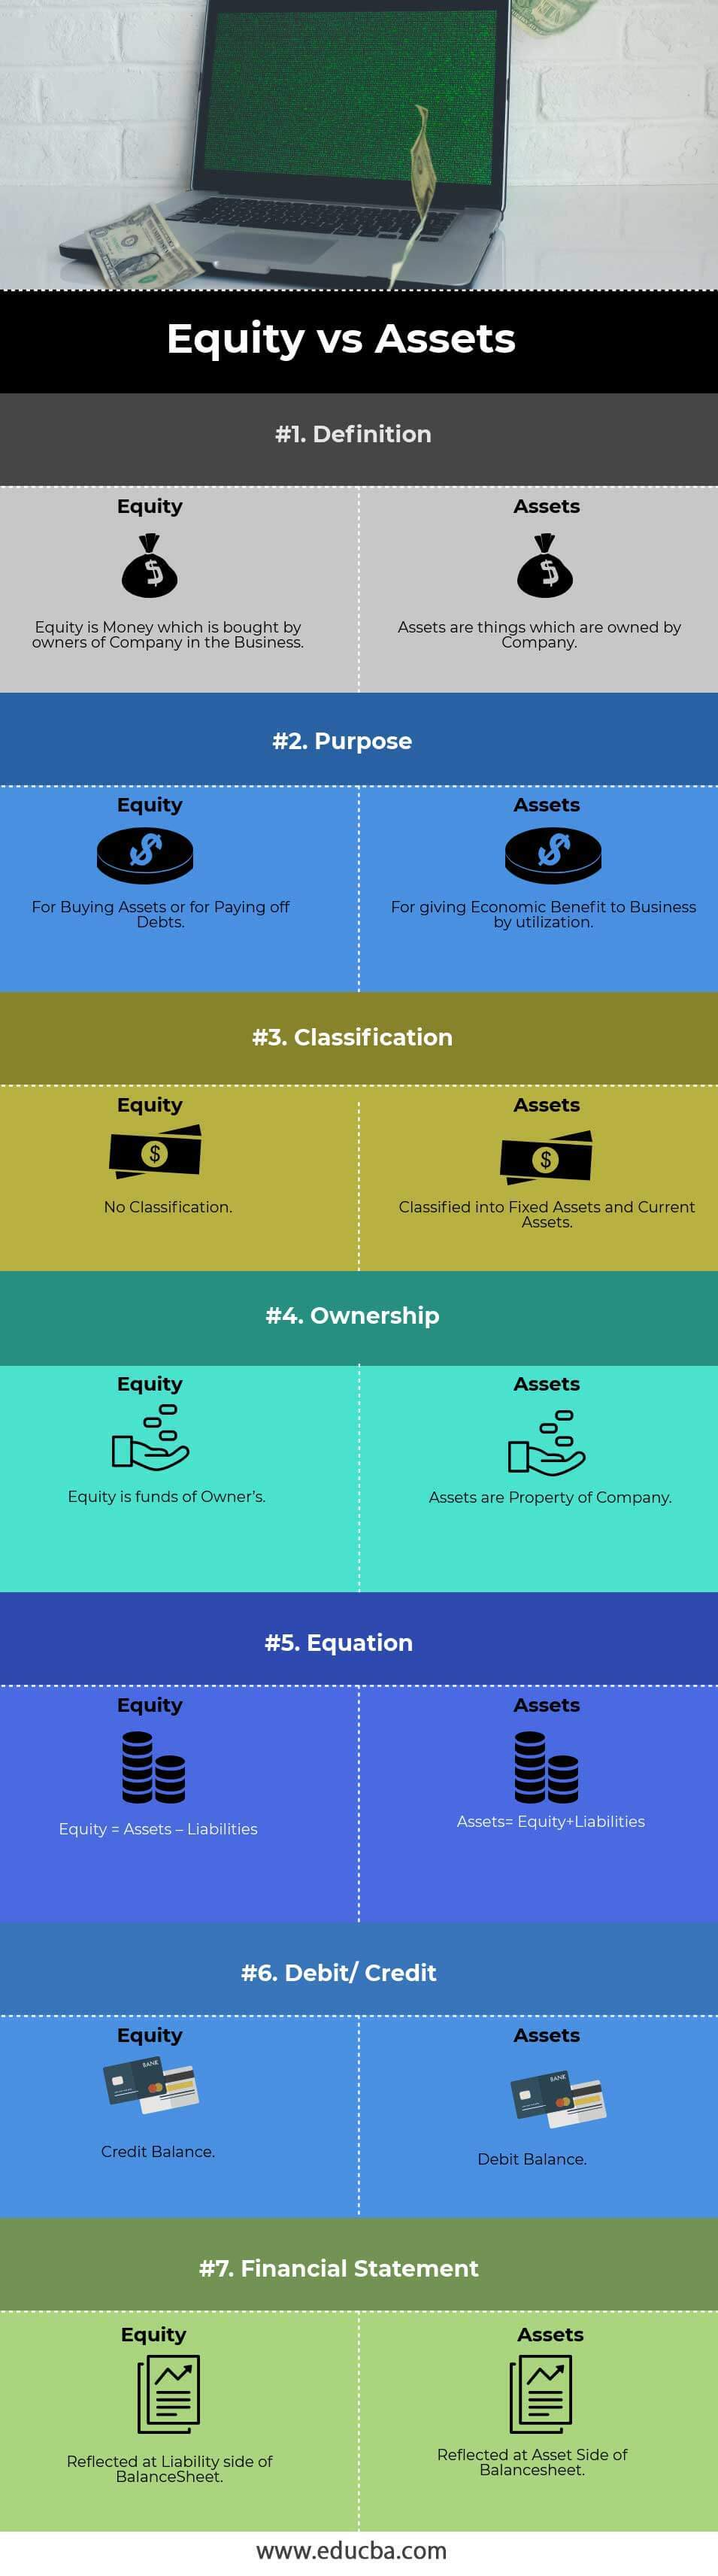 Equity vs Assets info